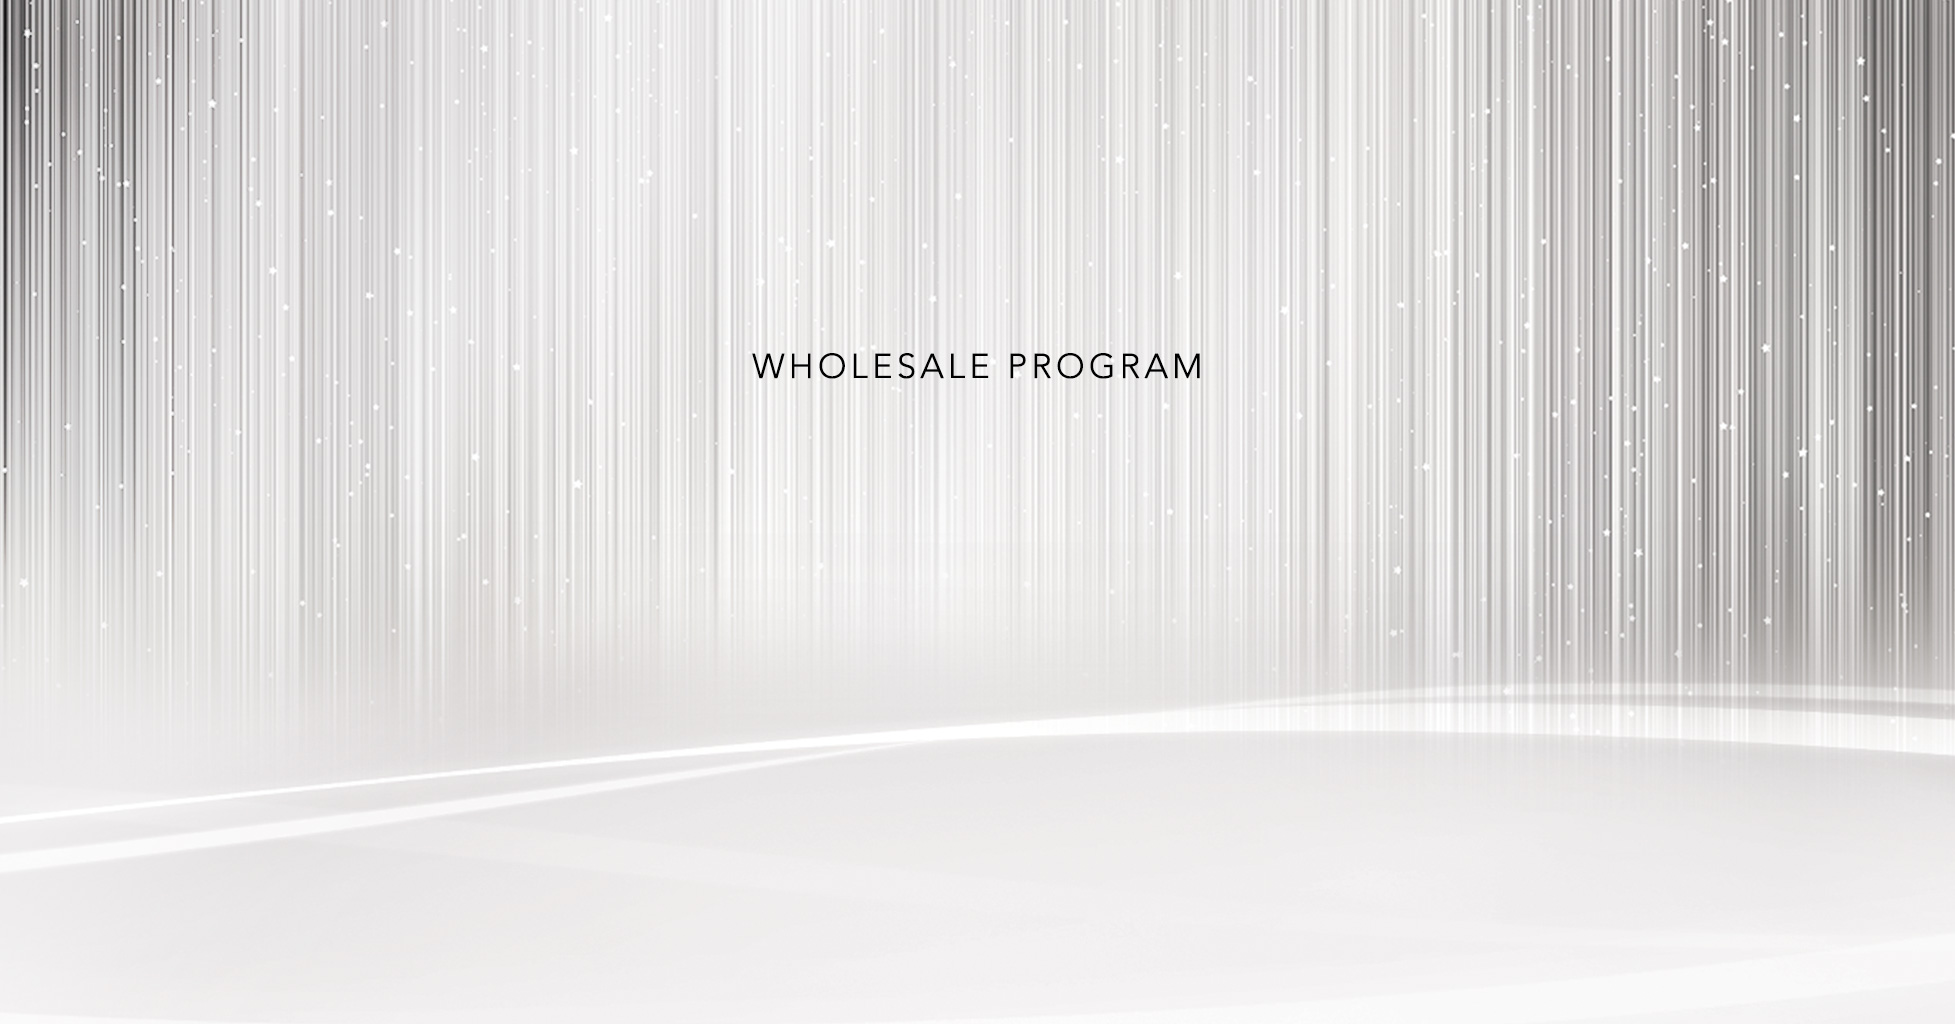 Wholesale Program